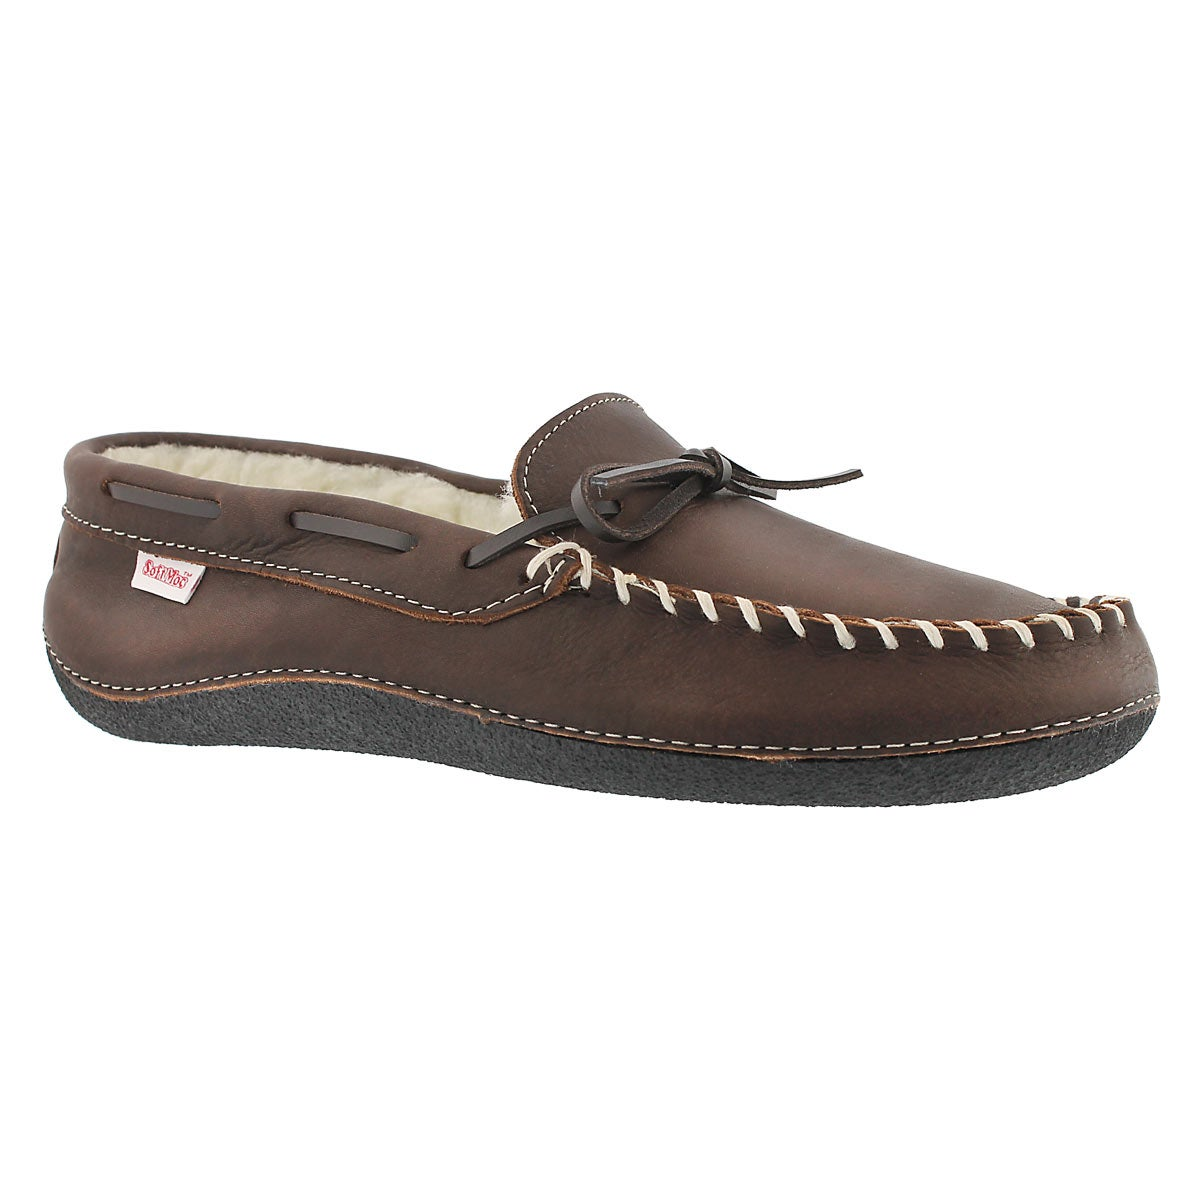 Men's GARY brown fleece lined leather moccasins